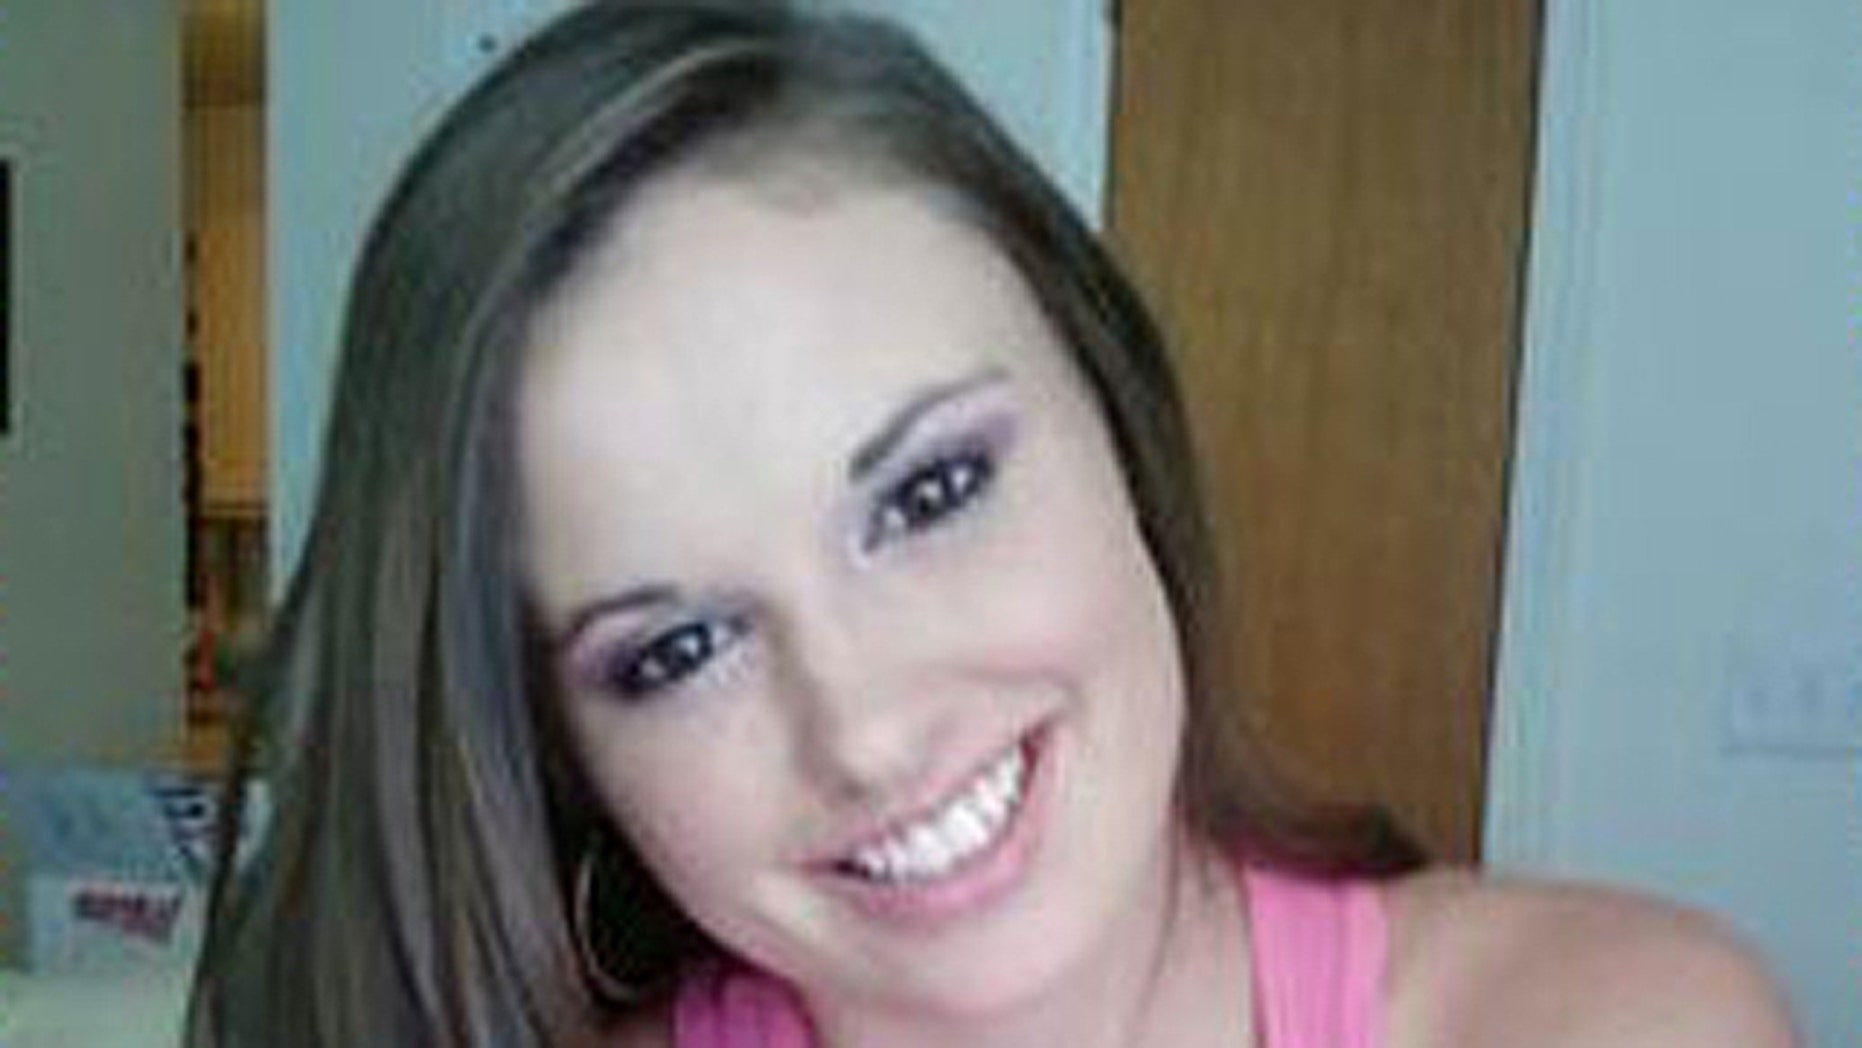 Police said they found 18-year-old Kristian Faith Stout, also known as Kristian Ward, on Tuesday (MyFoxPhoenix.com).